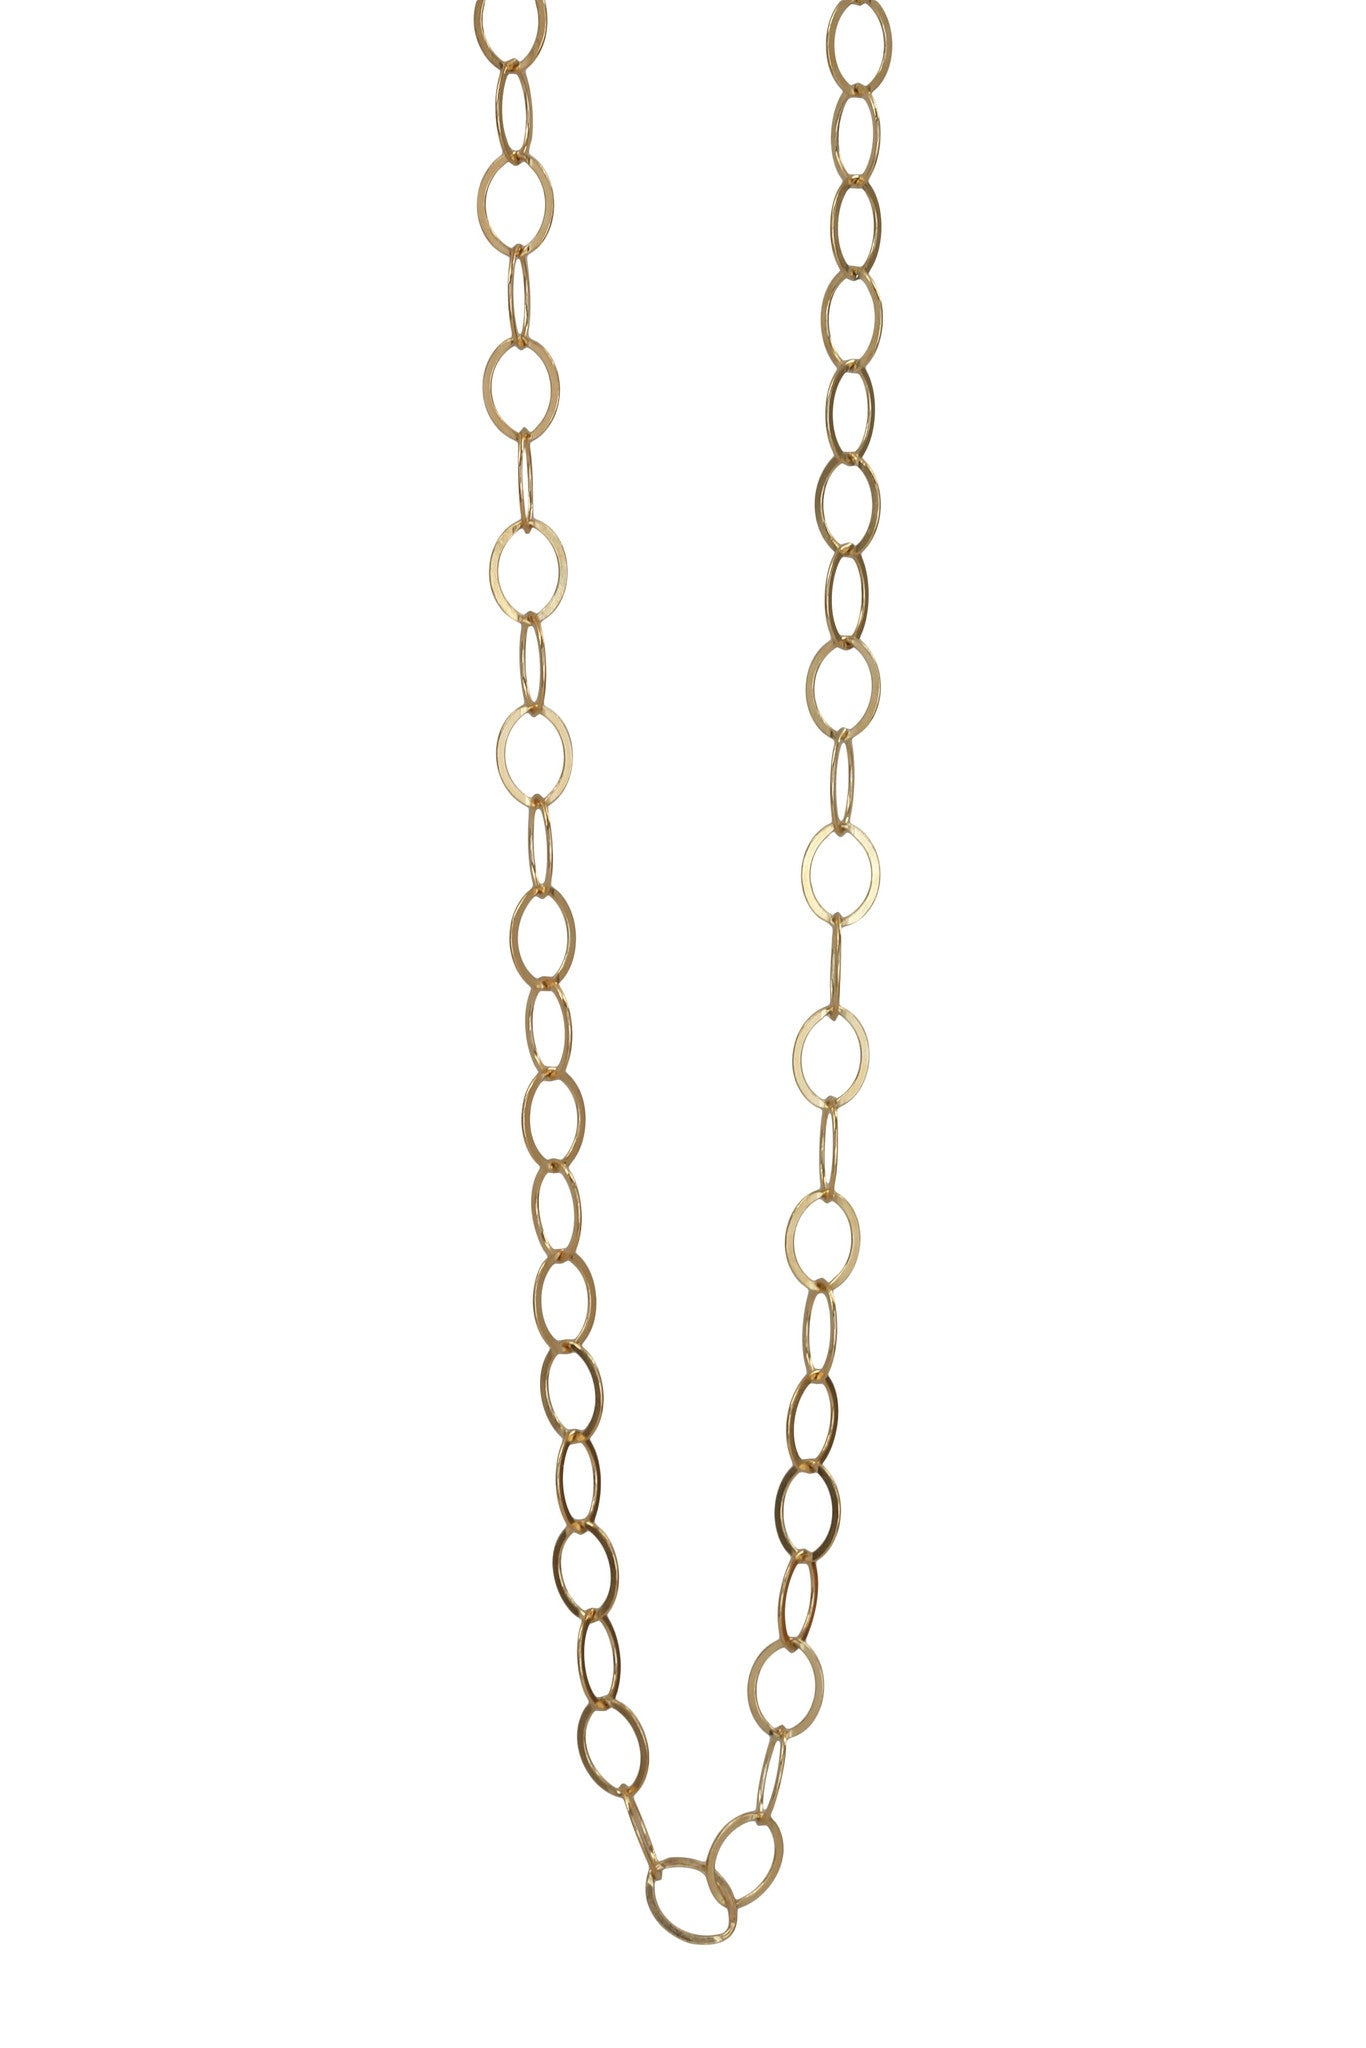 not-so-basic gold chain